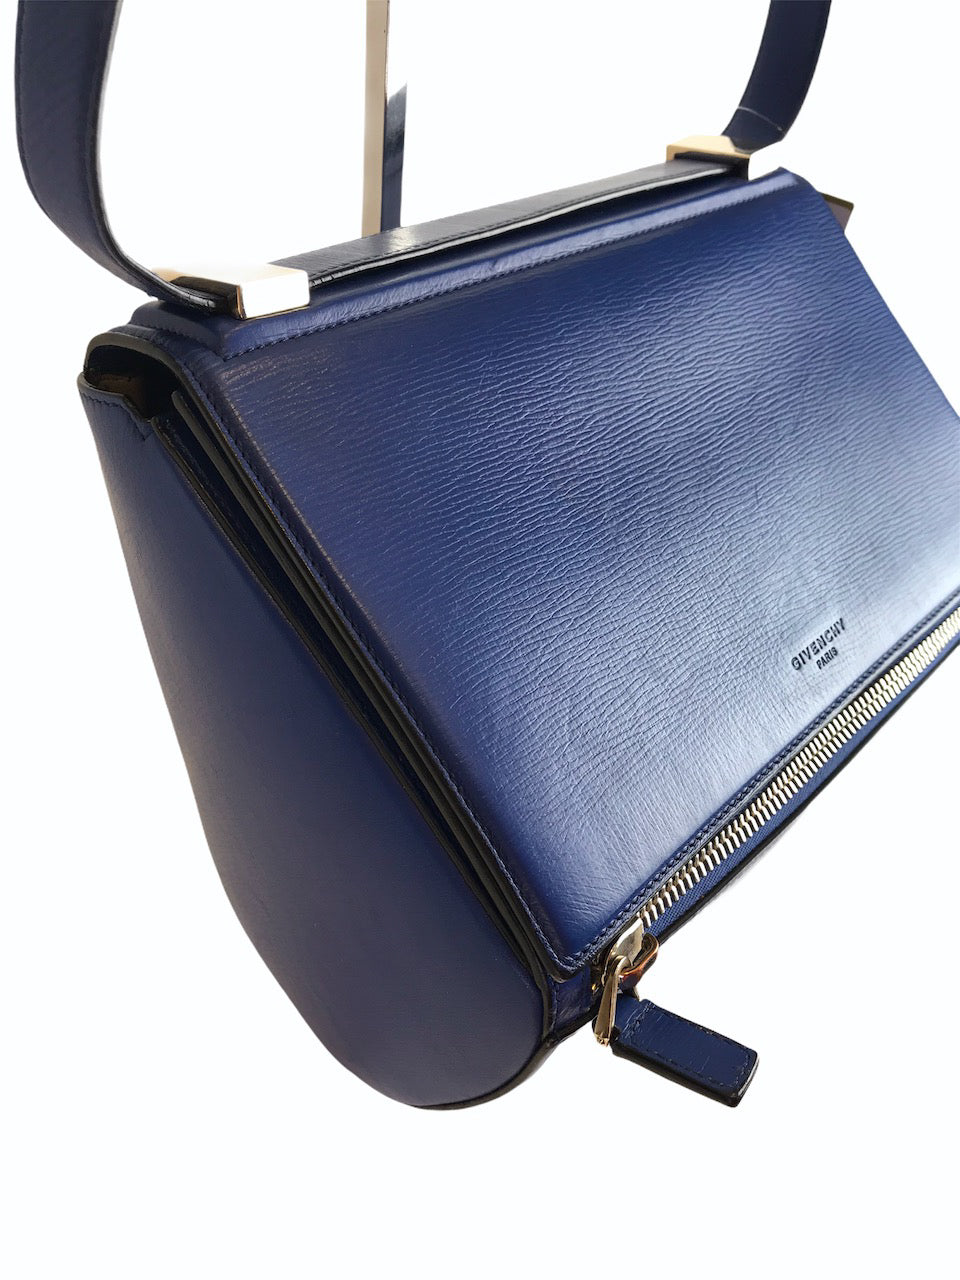 Givenchy Blue Leather Pandora Crossbody- As Seen On Instagram 09/09/2020